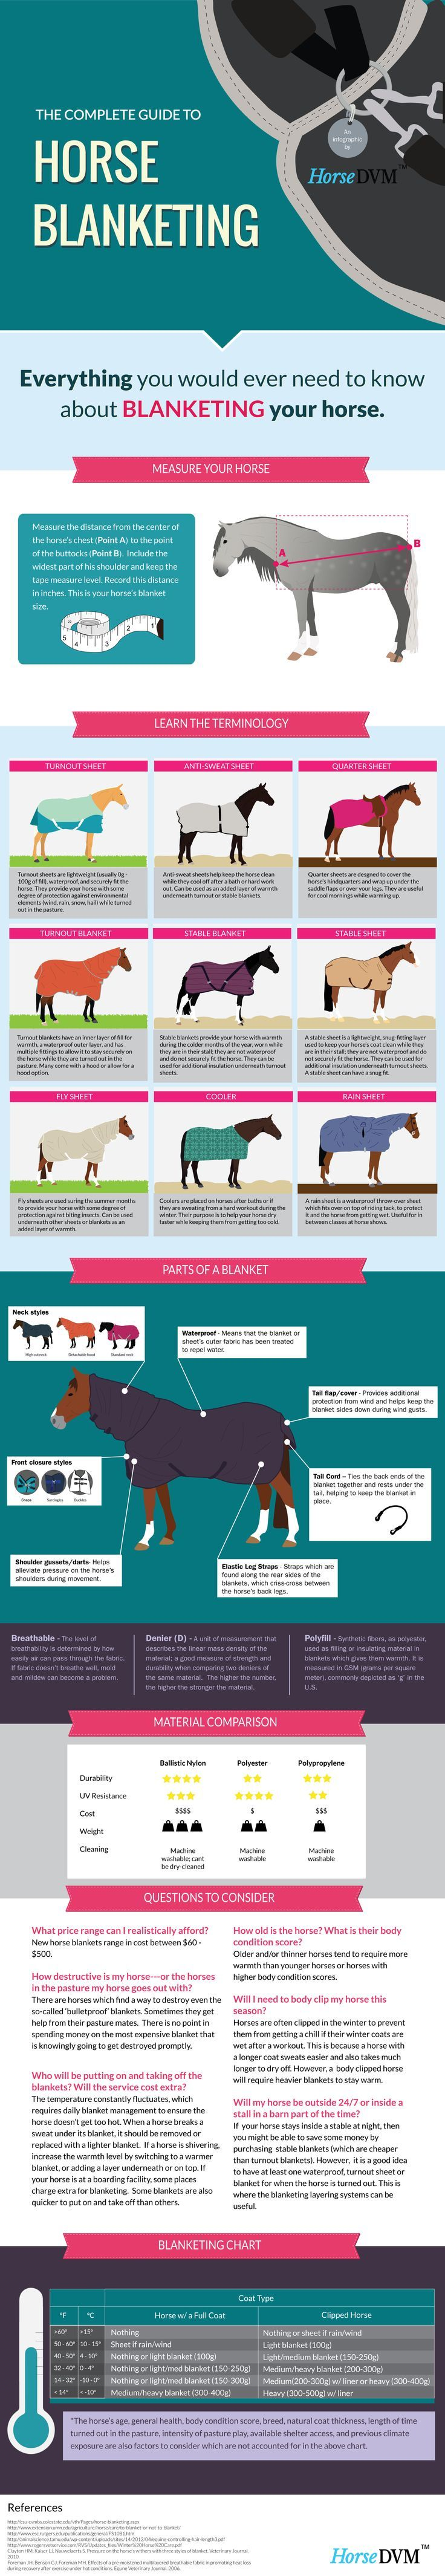 How Horses Learn | Equimed - Horse Health Matters